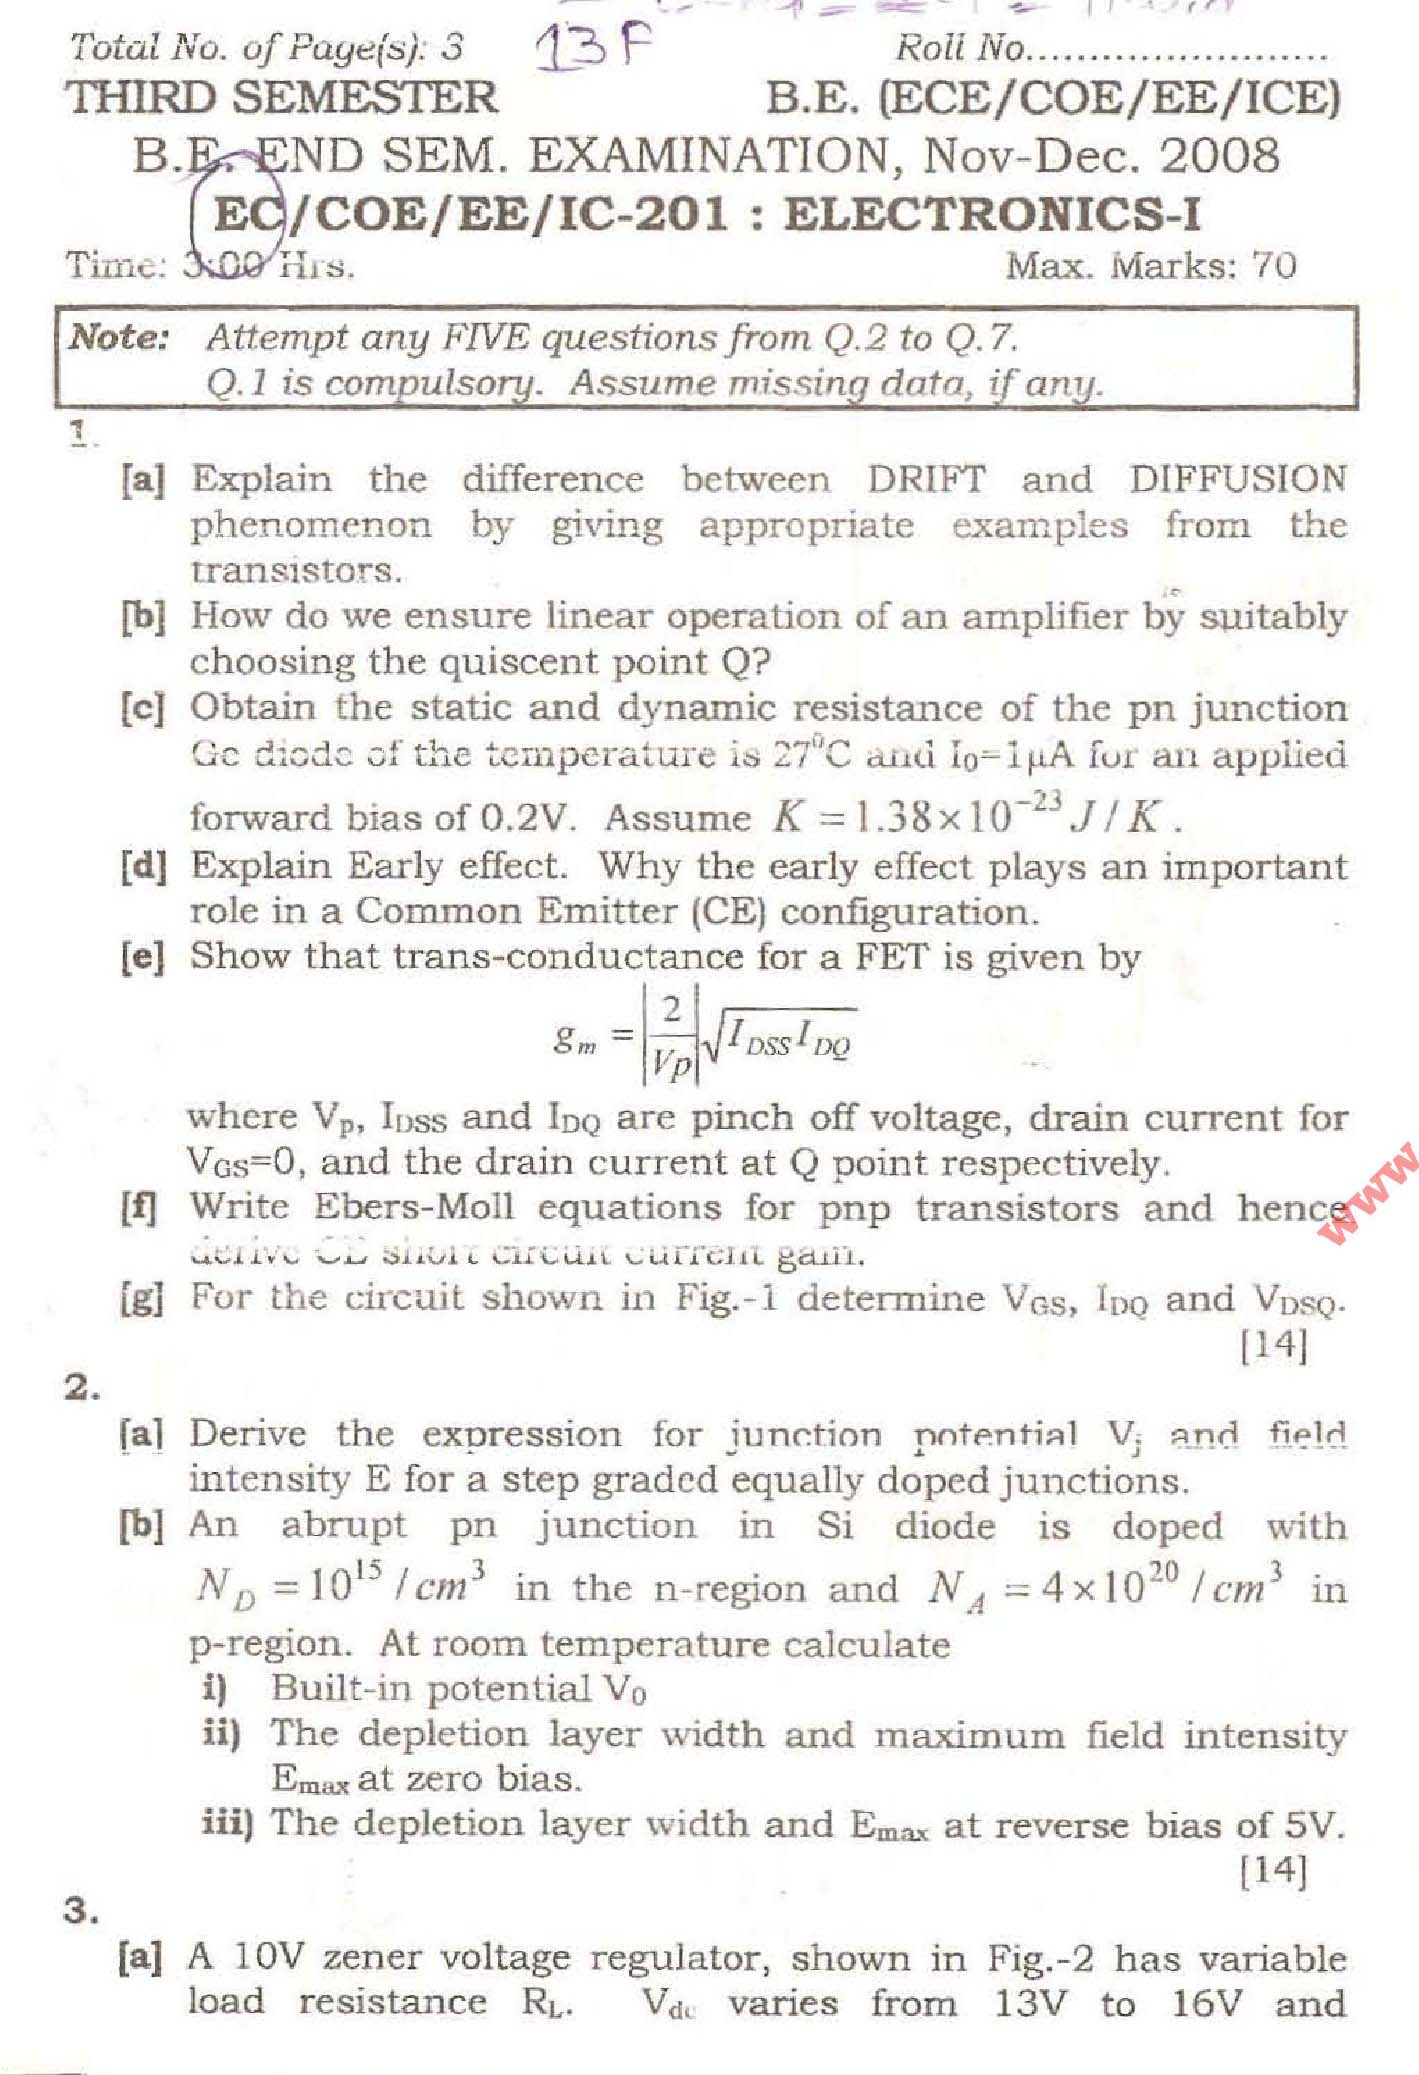 NSIT Question Papers 2008 – 3 Semester - End Sem - EC-COE-EE-IC-201